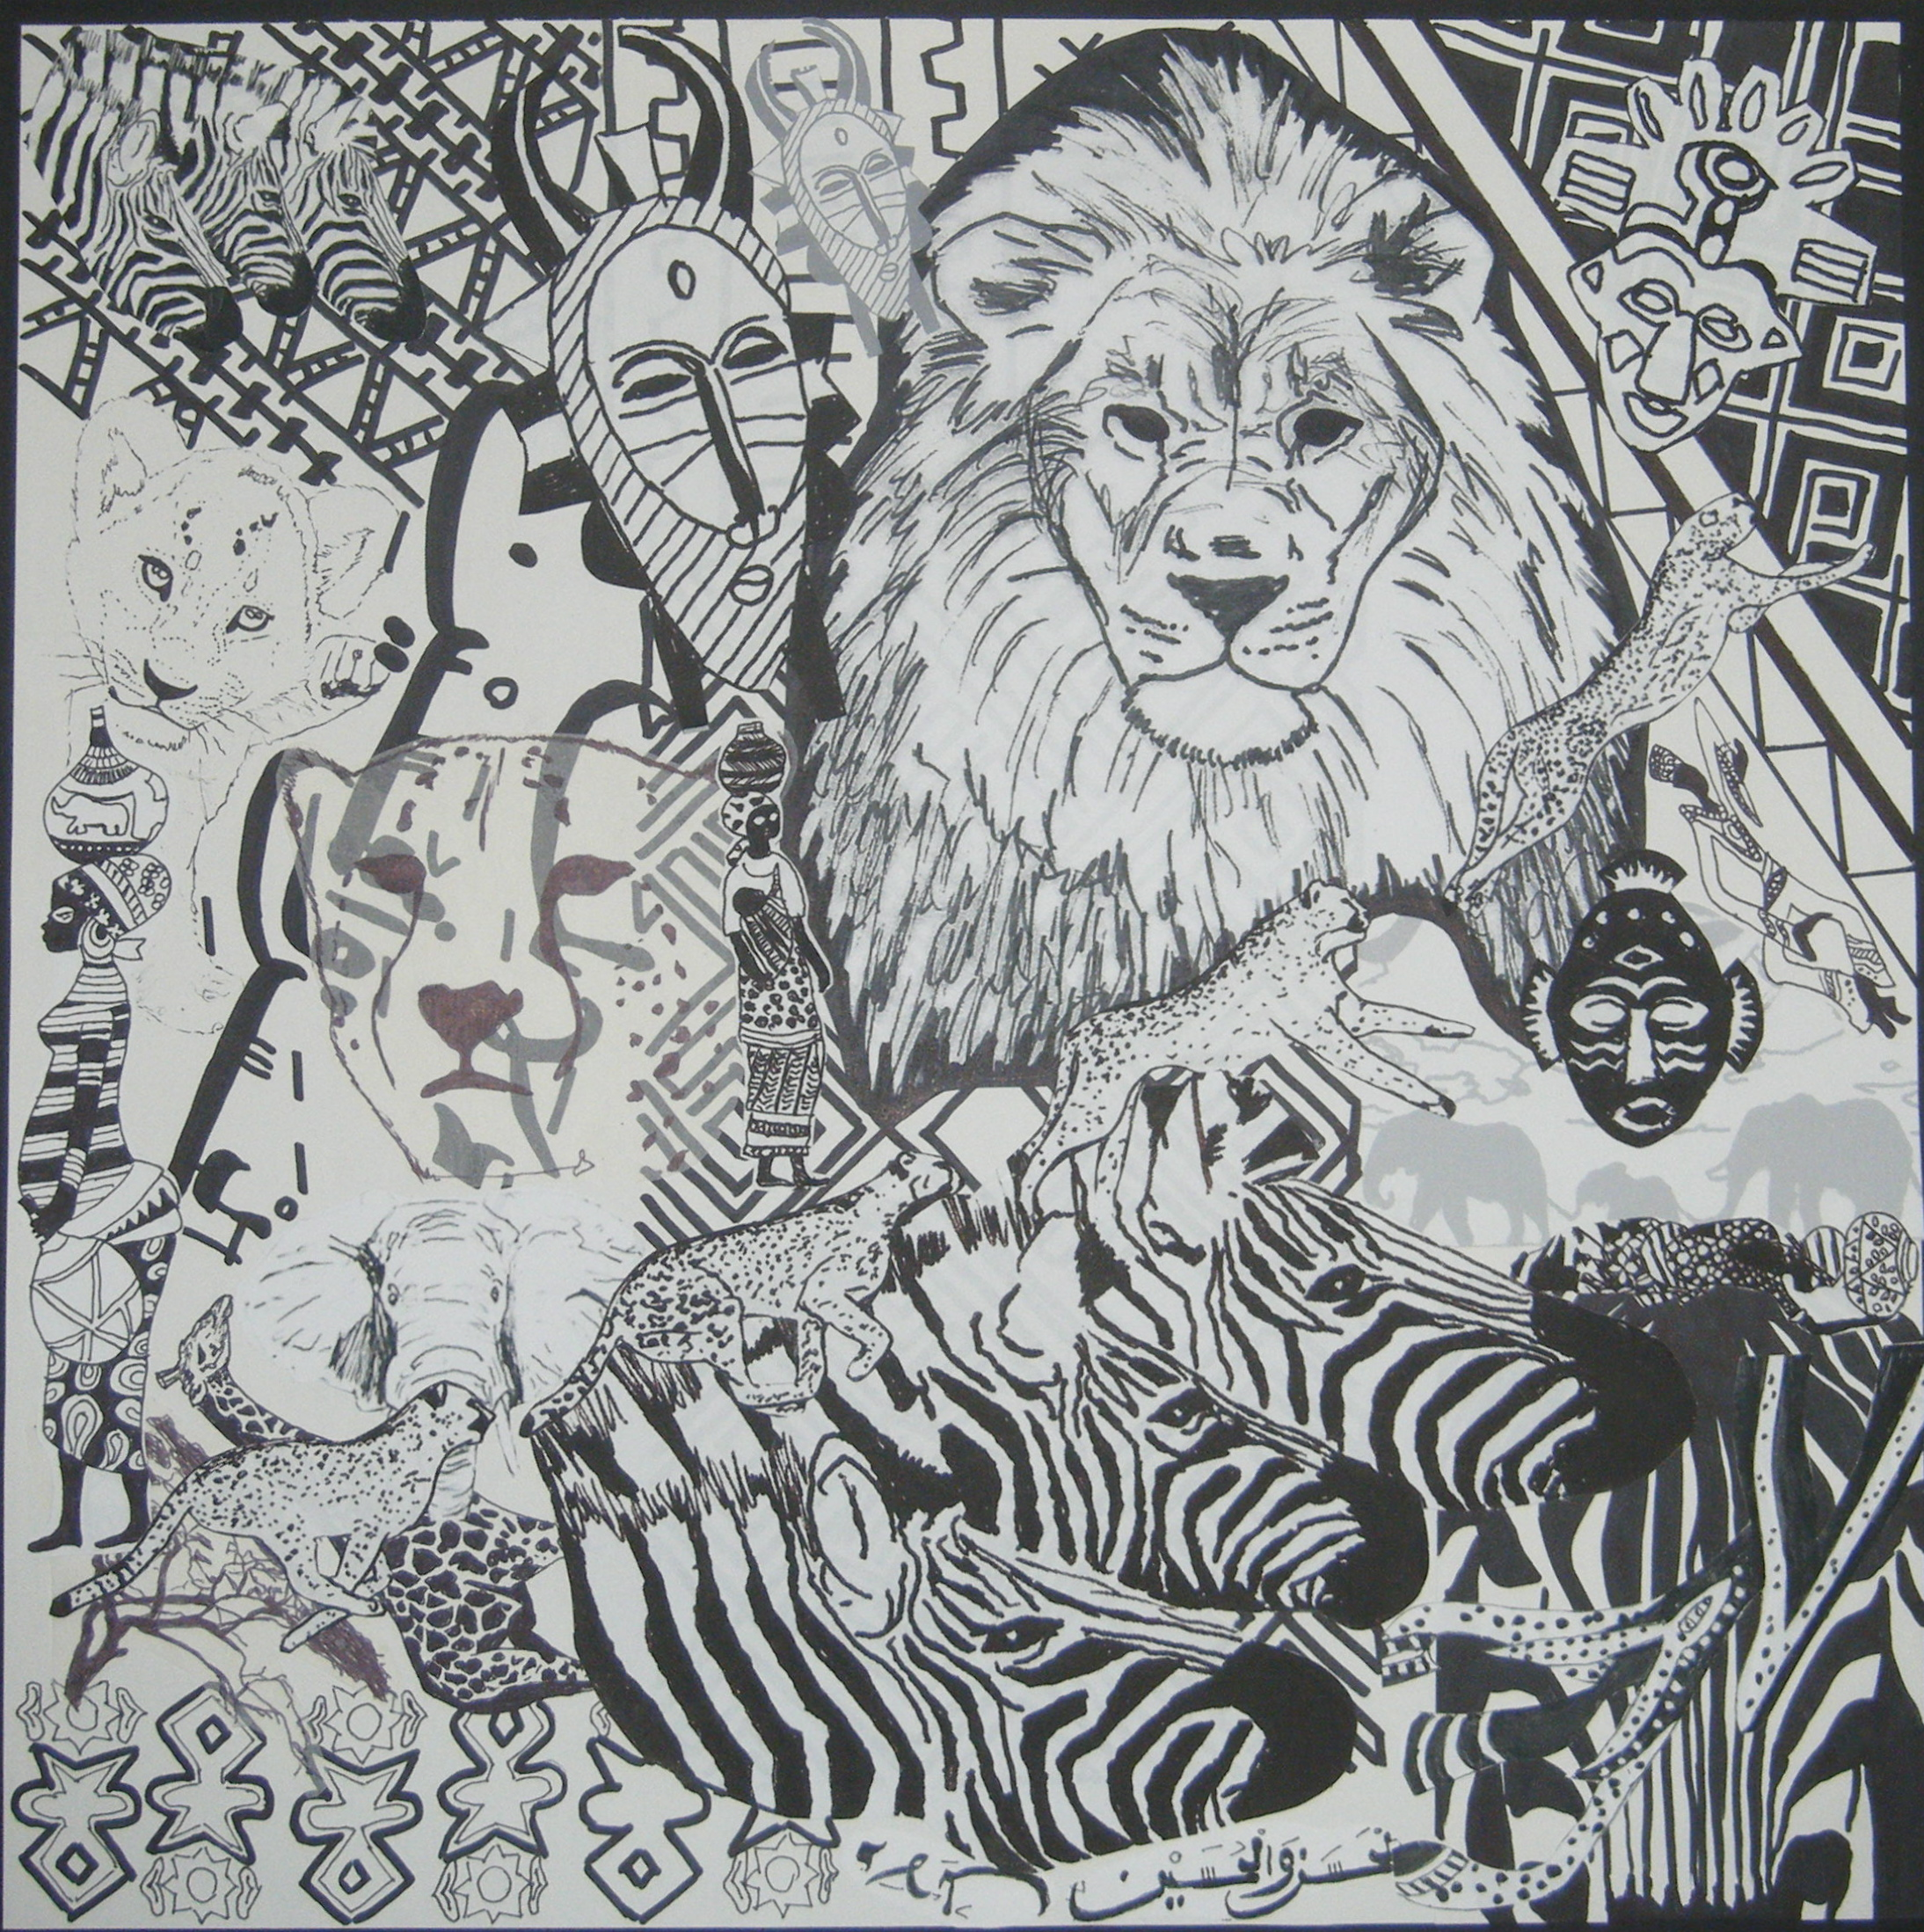 Drawn collage Collage African African kvcollins Collage